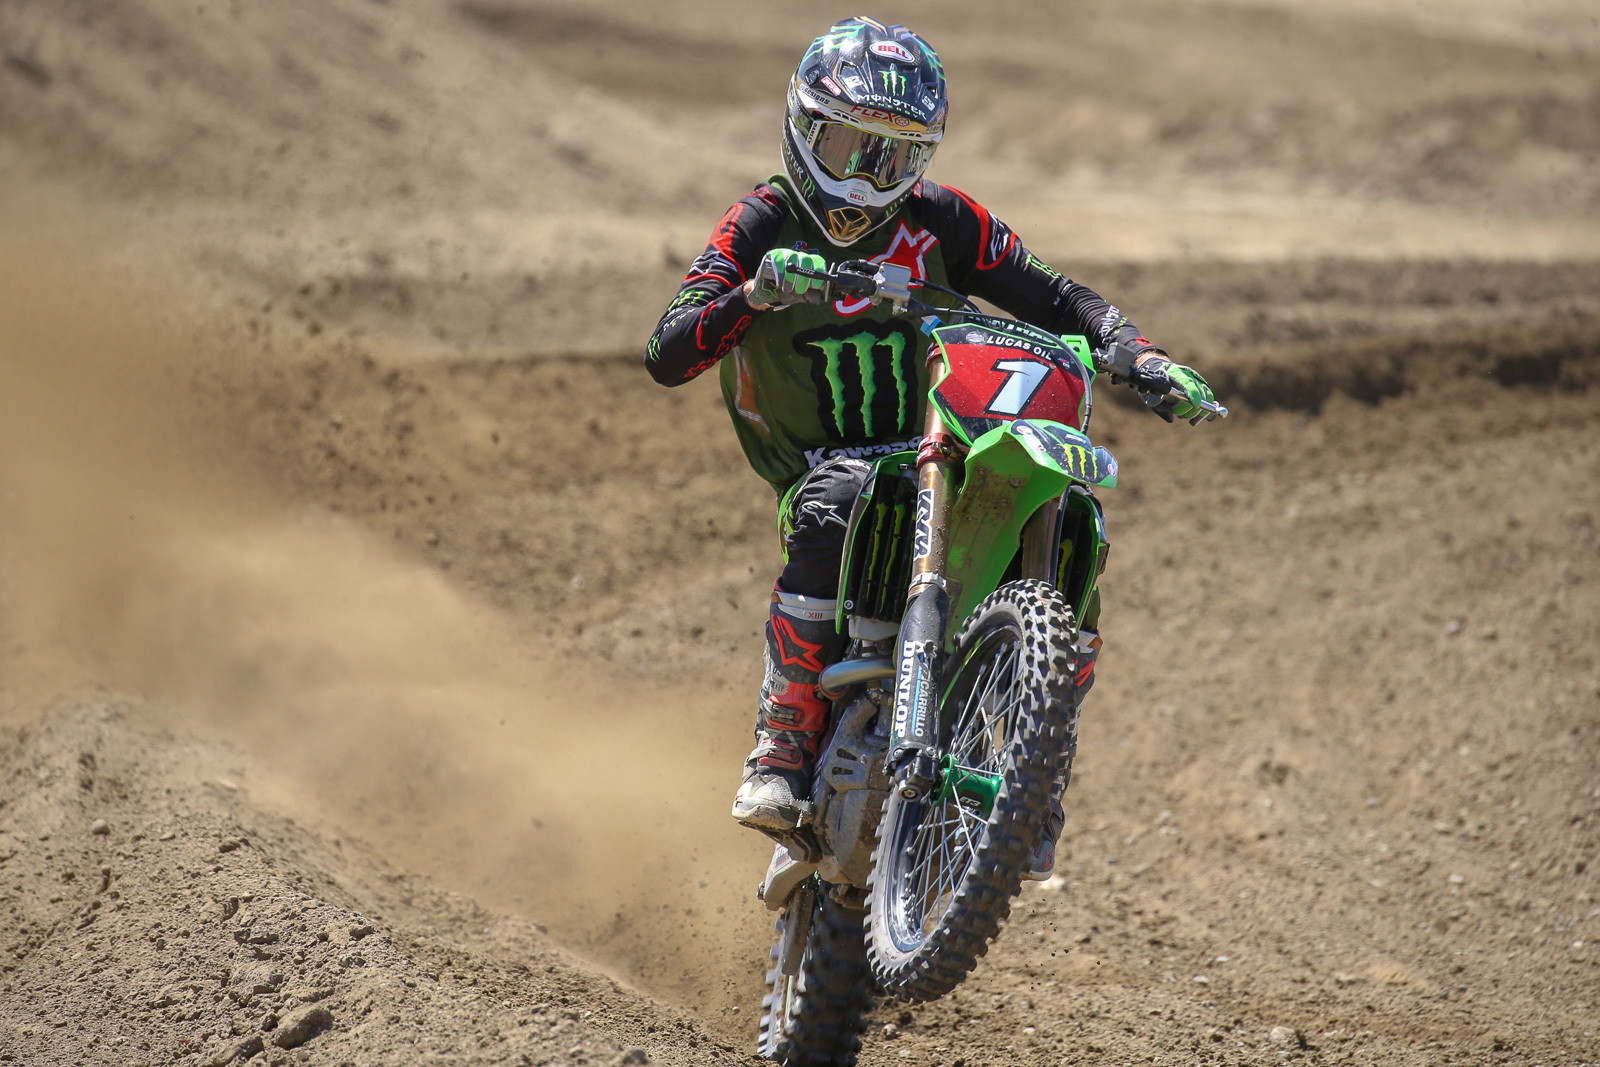 Today was the first day out for Eli Tomac on his new '19 race bike, after taking a couple weeks off. It looked like a pretty seamless switch for him.